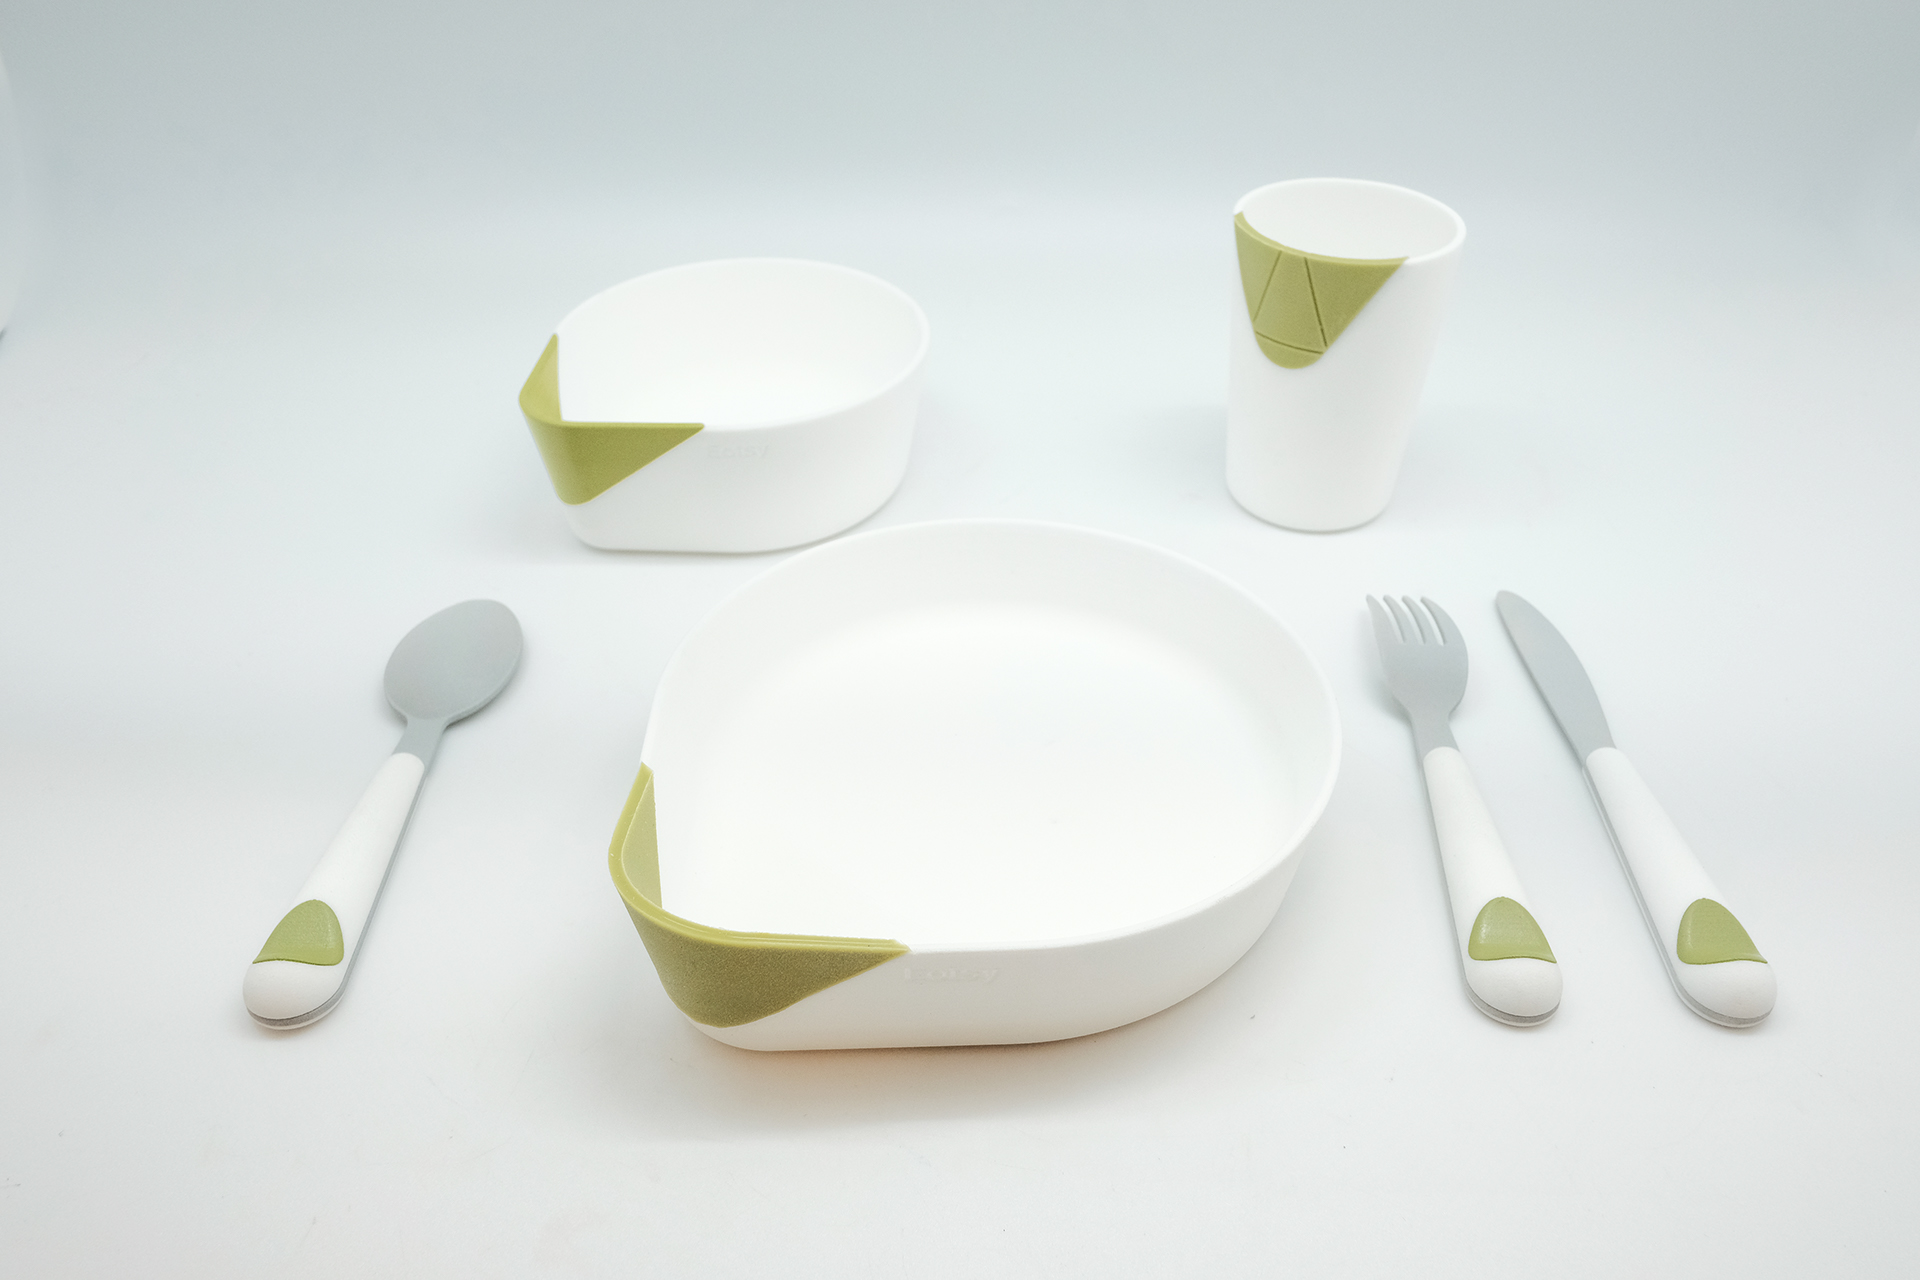 Industrial Design: Tableware for Visually Impaired People